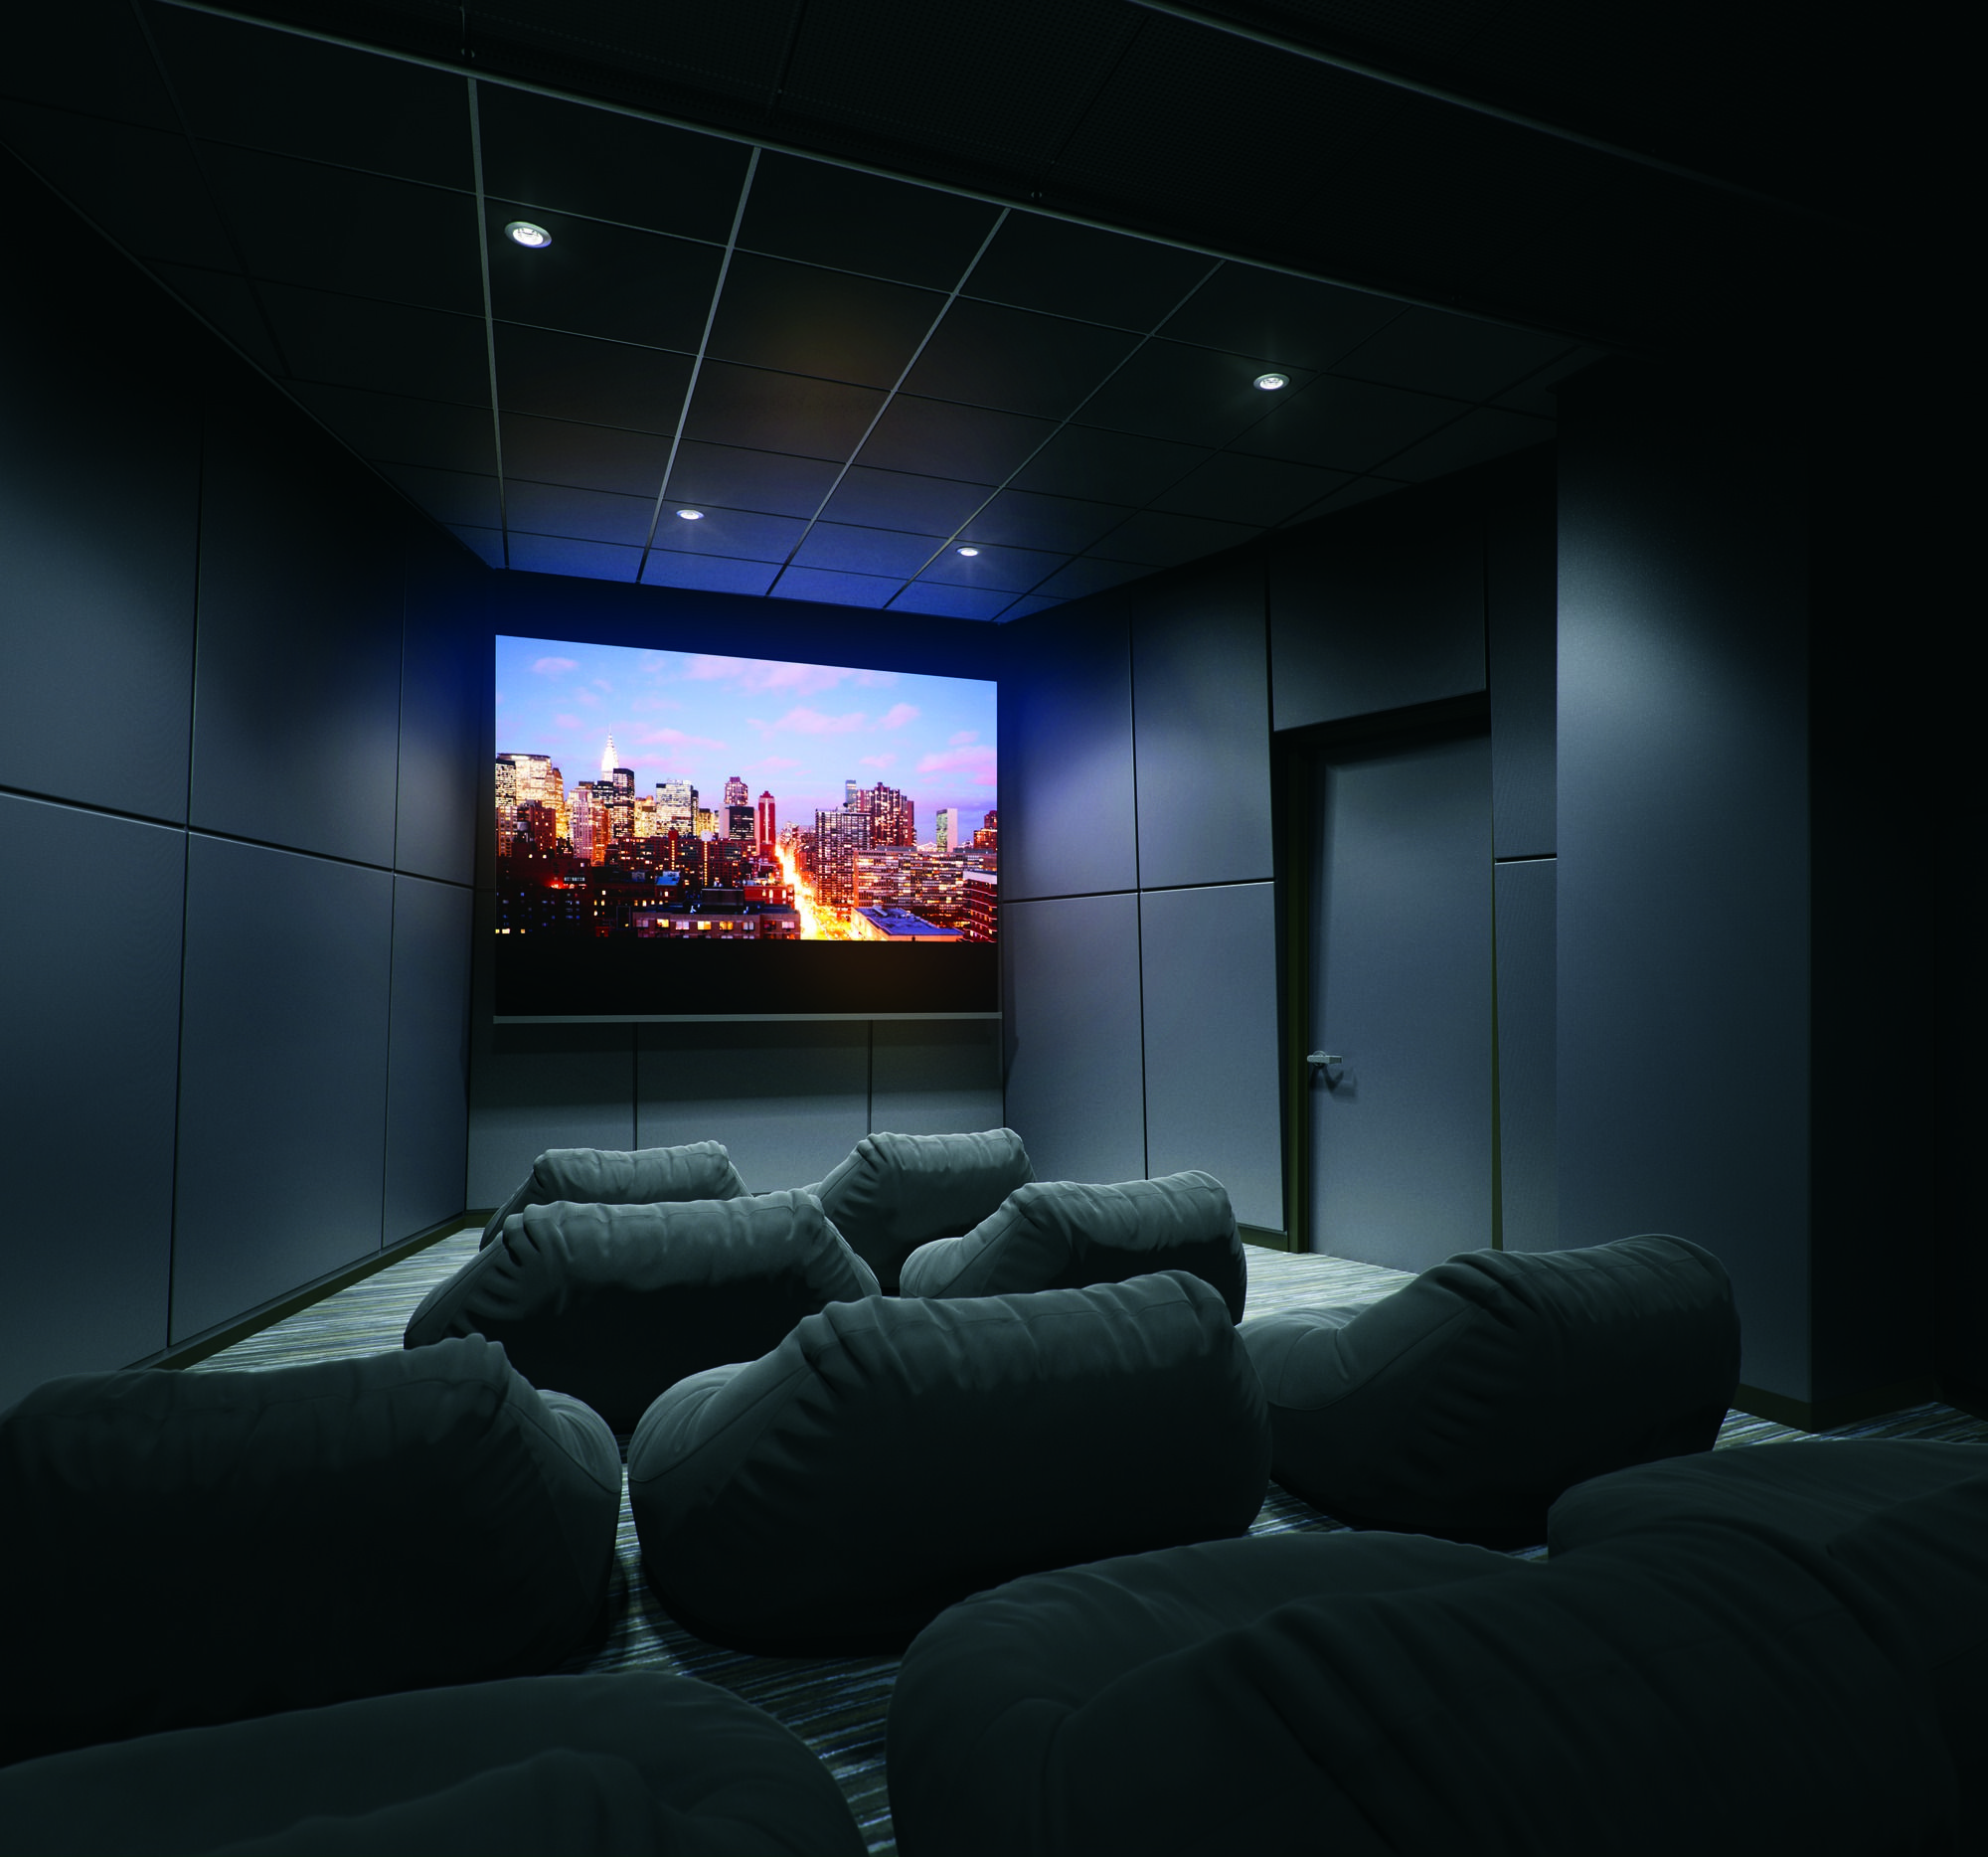 Who Doesn't Like To Watch Movies In A Dark, Quiet Room